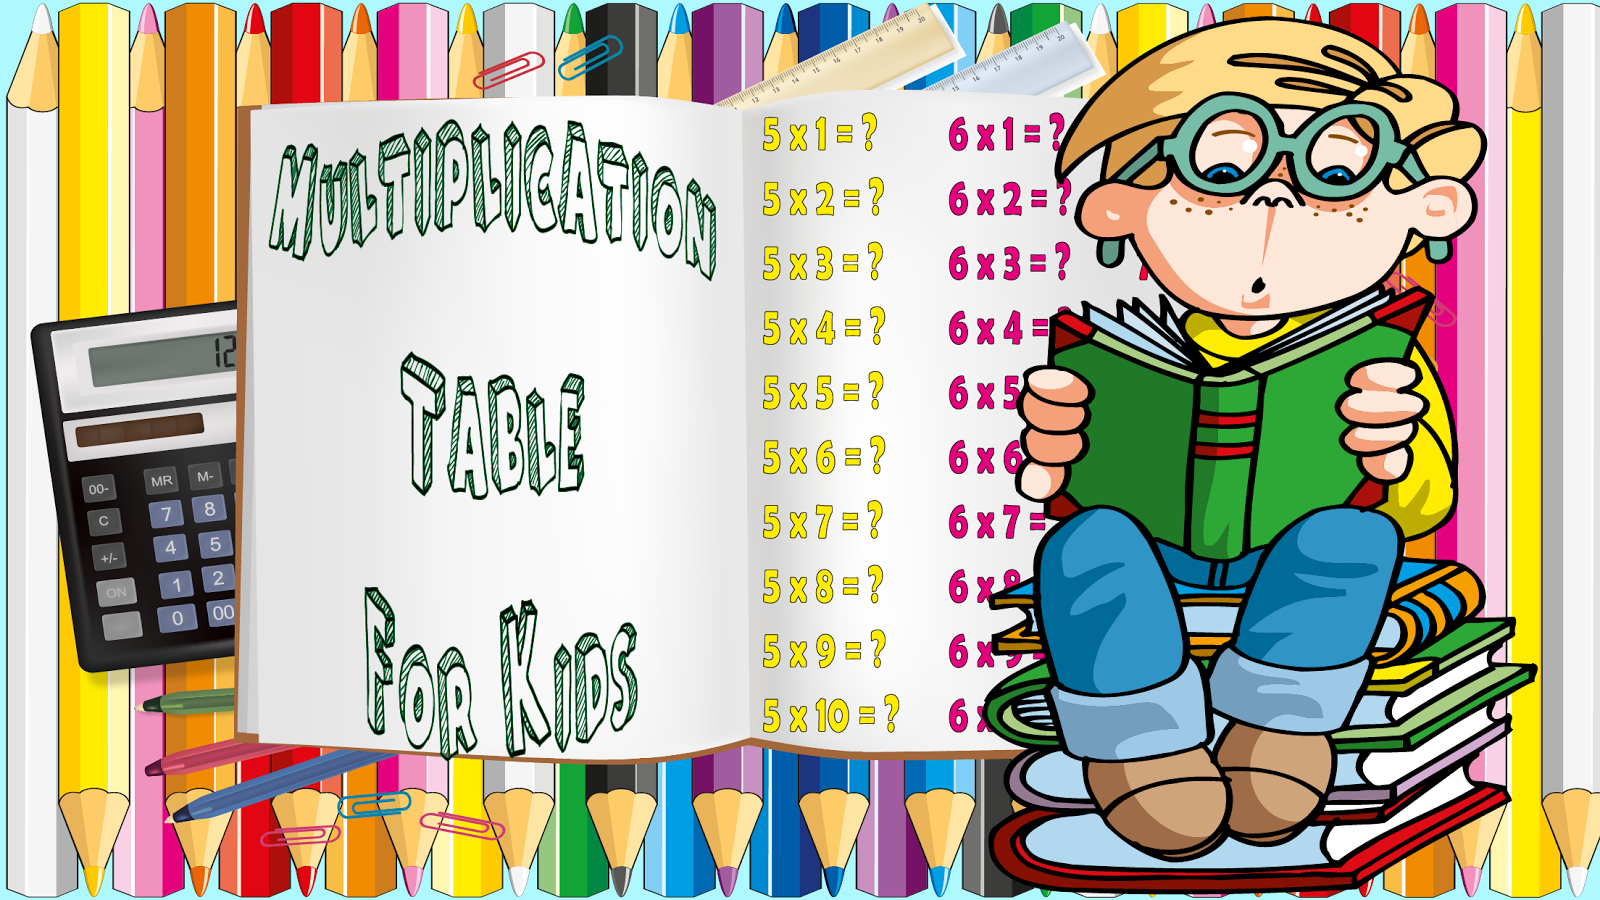 Multiplication table for kids android apps on google play - Times table games for children ...